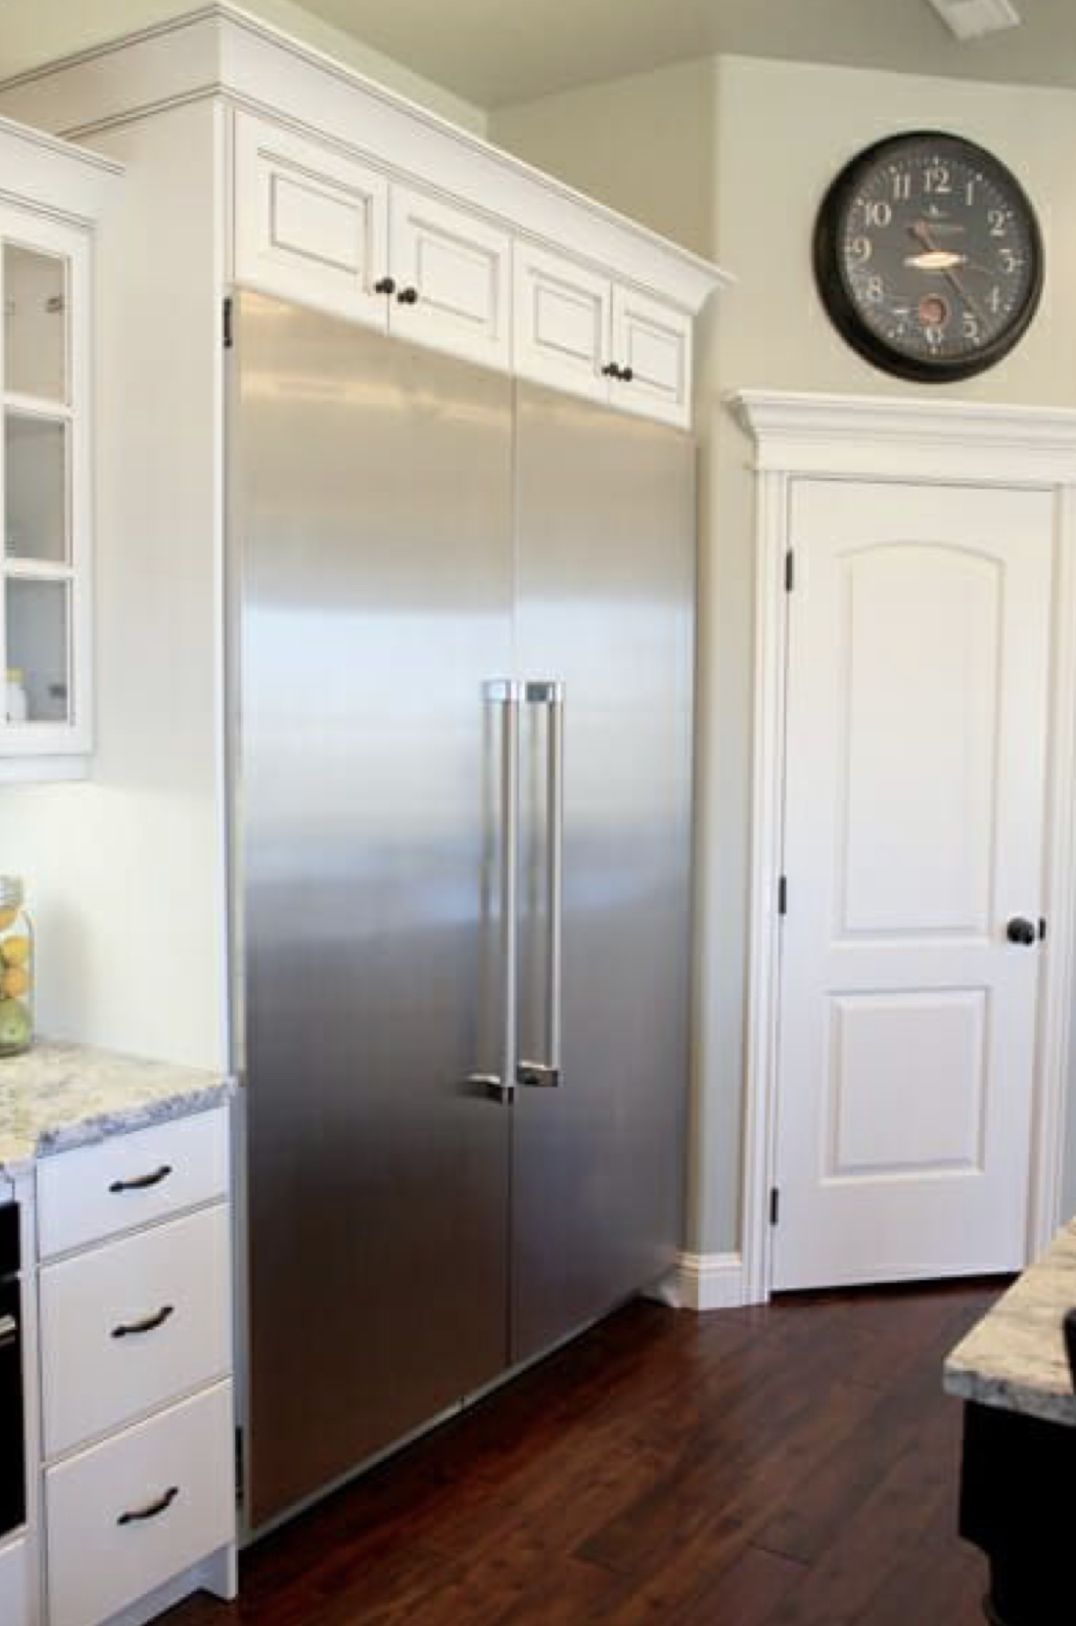 Thermador Side By Side Refrigerator And Freezer Columns Outdoor Kitchen Appliances Home Built In Refrigerator